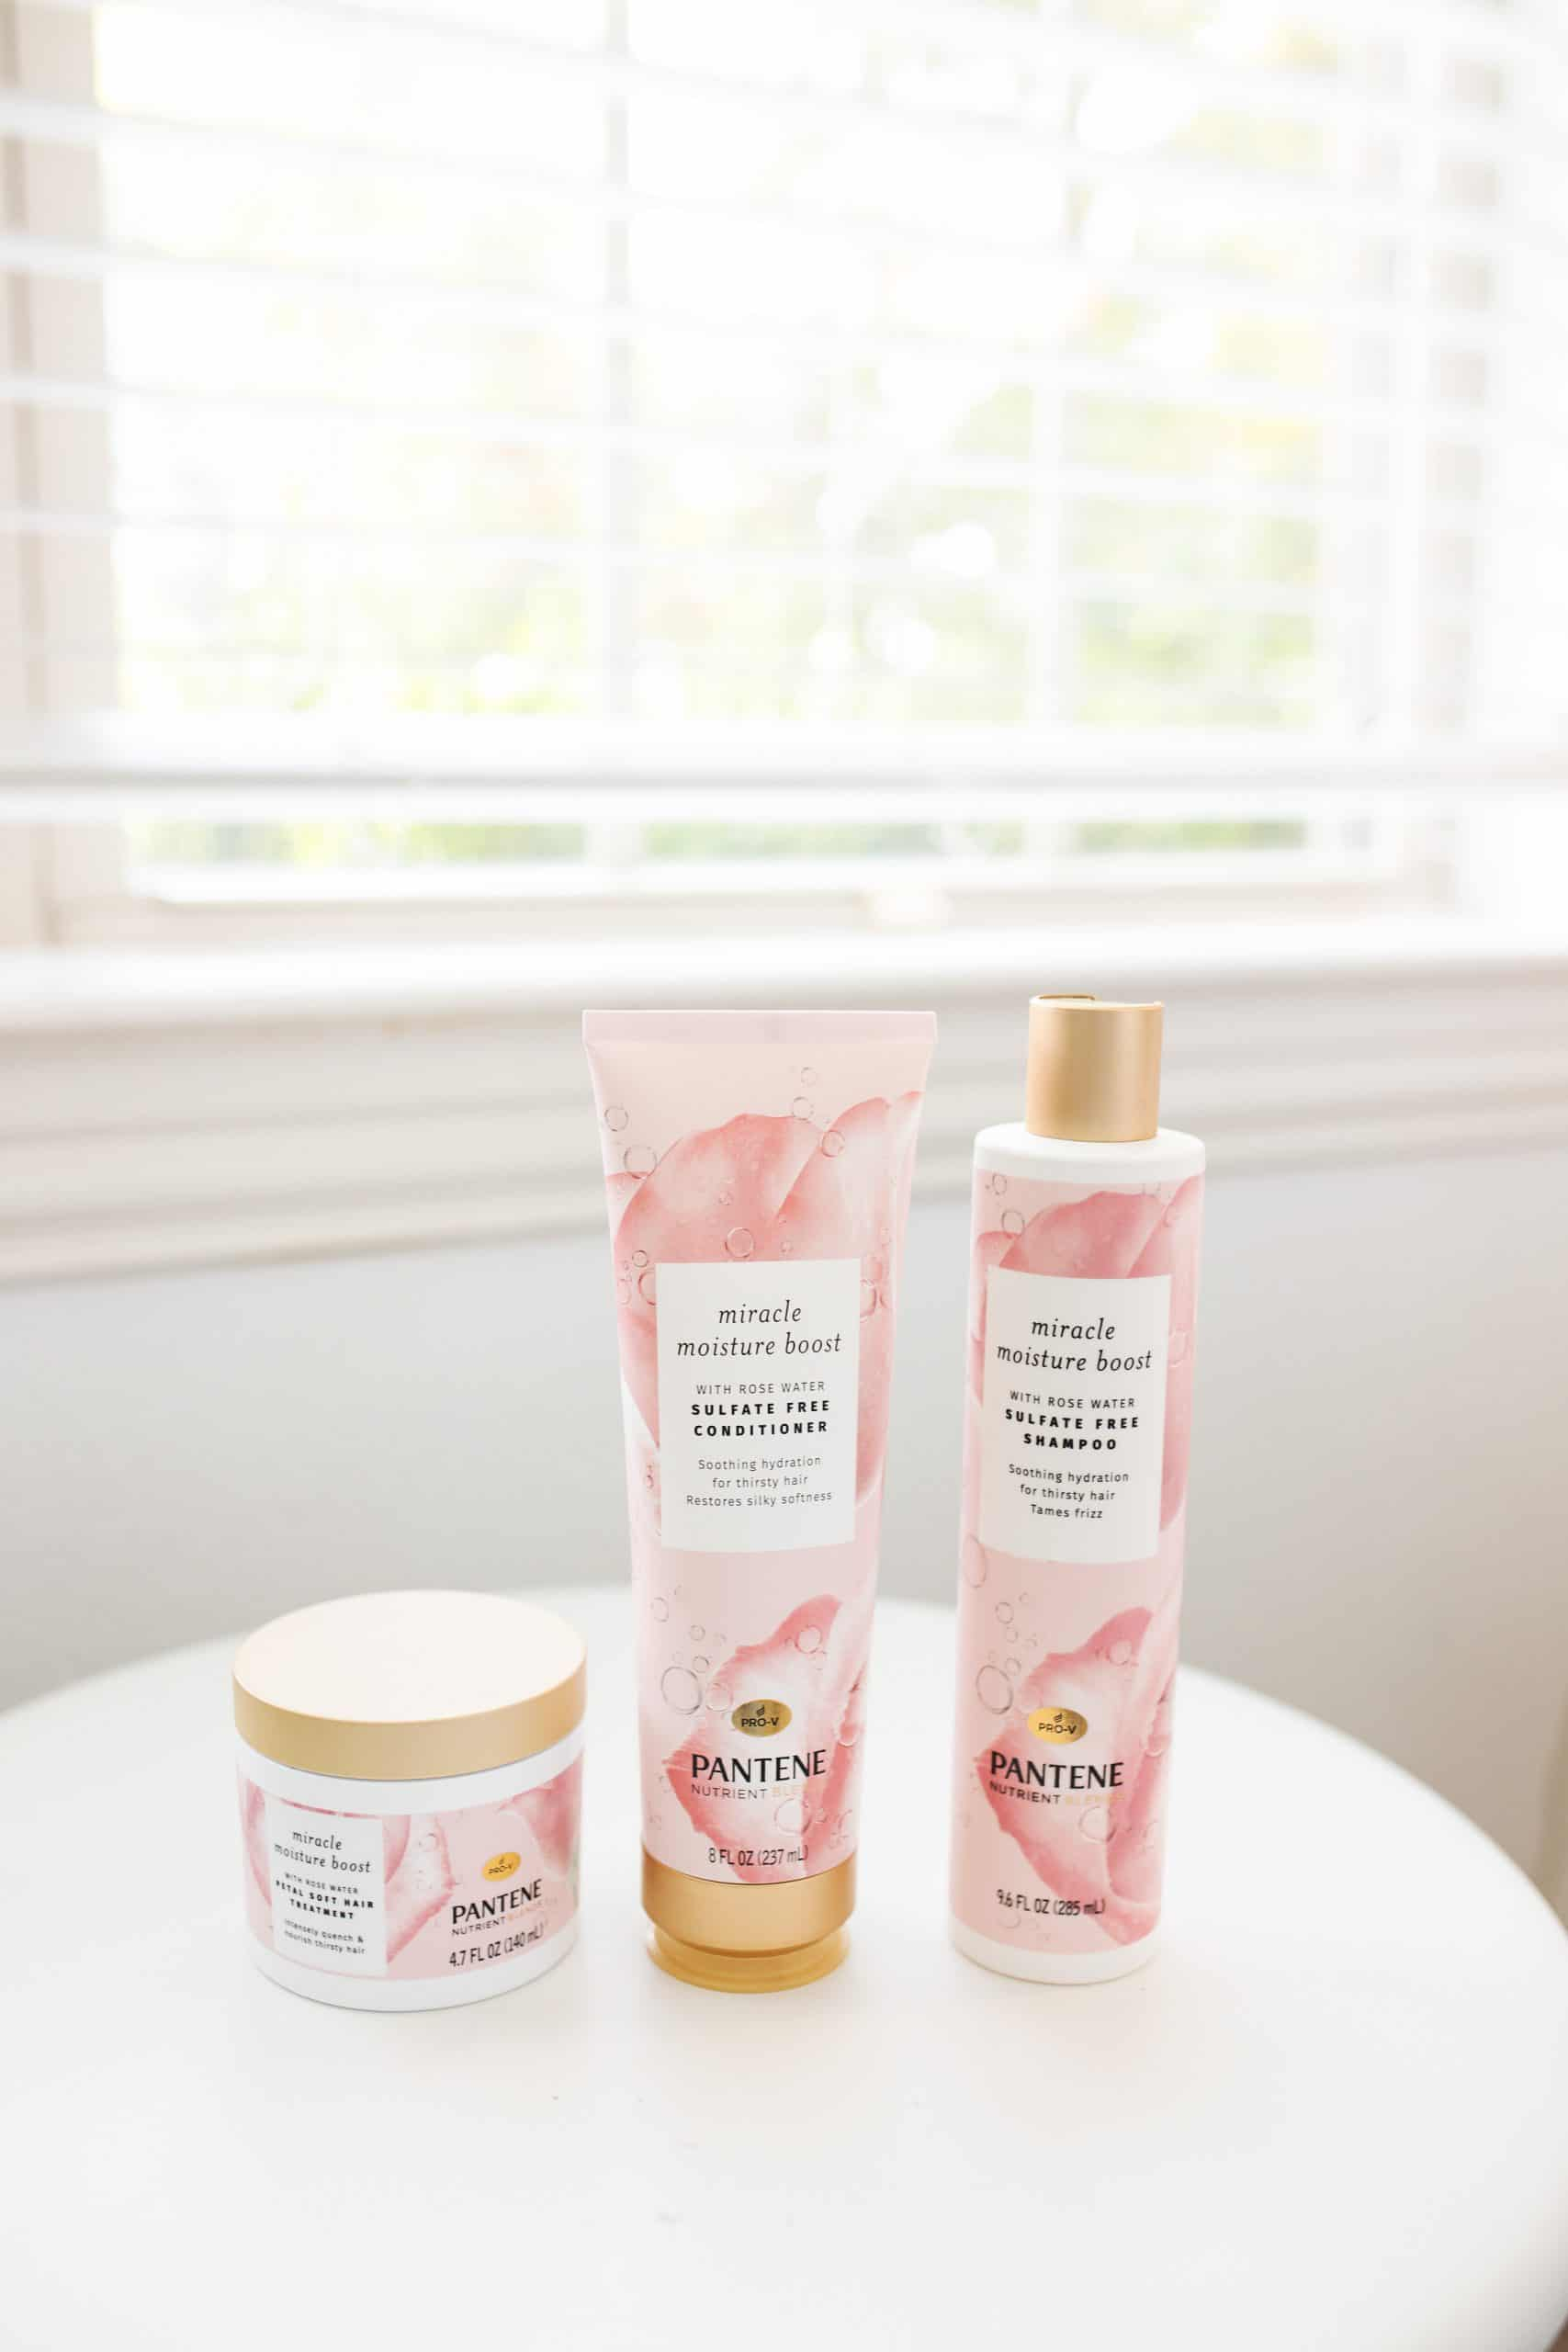 Self Confidence Tips by popular Dallas lifestyle blog, Glamorous Versatility: image of Pantene Miracle Moisture Boost Shampoo, Pantene Miracle Moisture Boost conditioner, and Pantene Miracle Moisture Boost Petal Soft Hair Treatment.